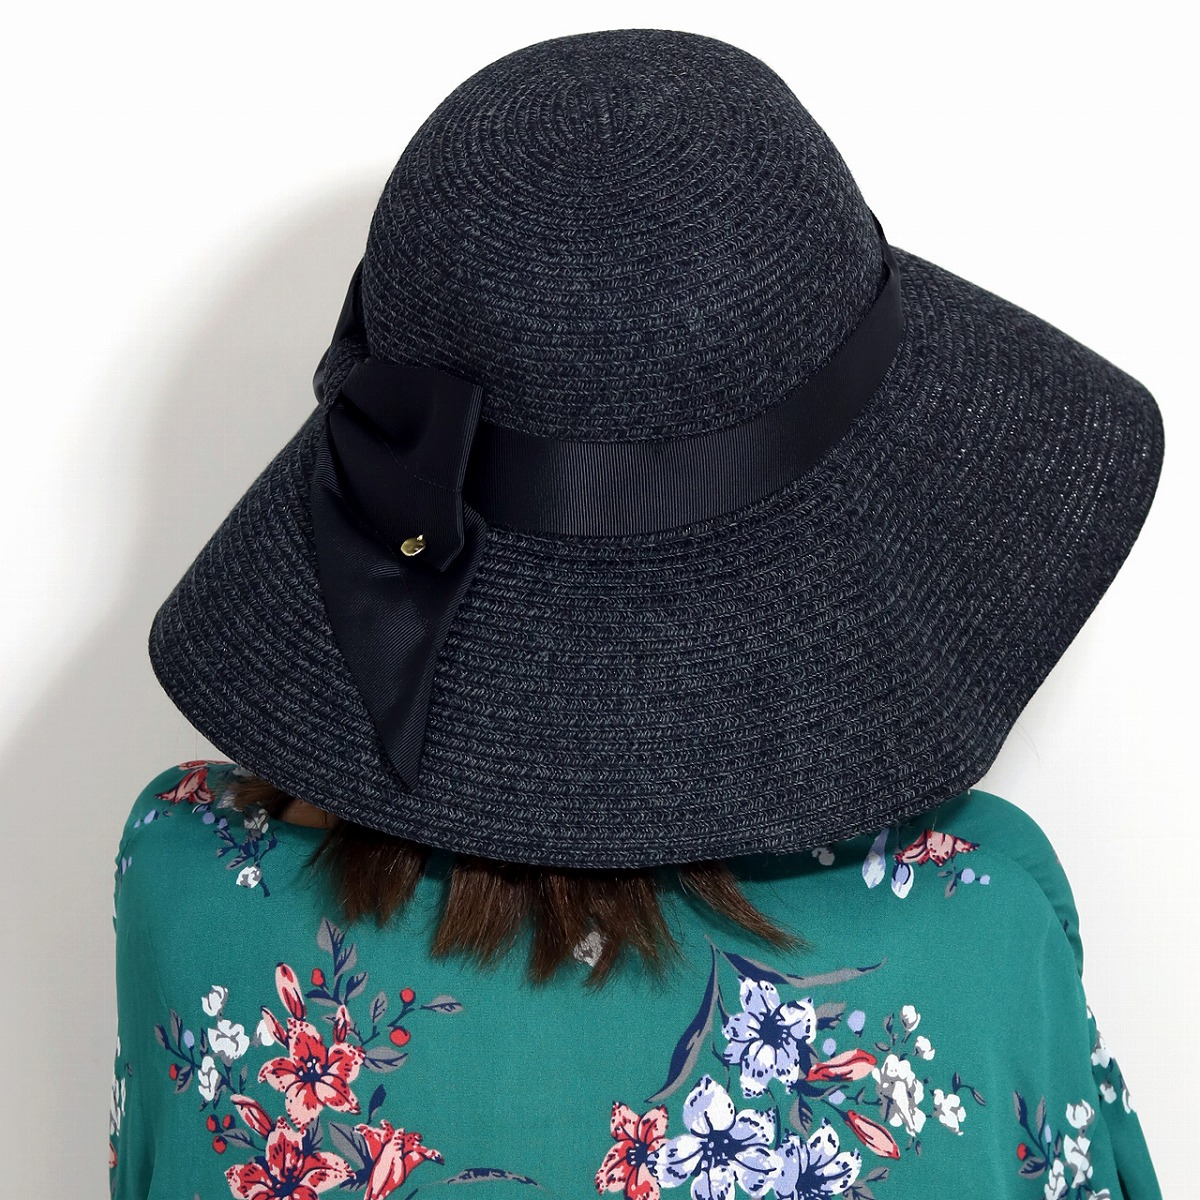 6d830b81669cb The ribbon straw hat hat 58cm size adjustment black  straw hat   wide-brim  hat  lapping free of charge that a broad-brimmed lady s hat black   elehelm  straw ...